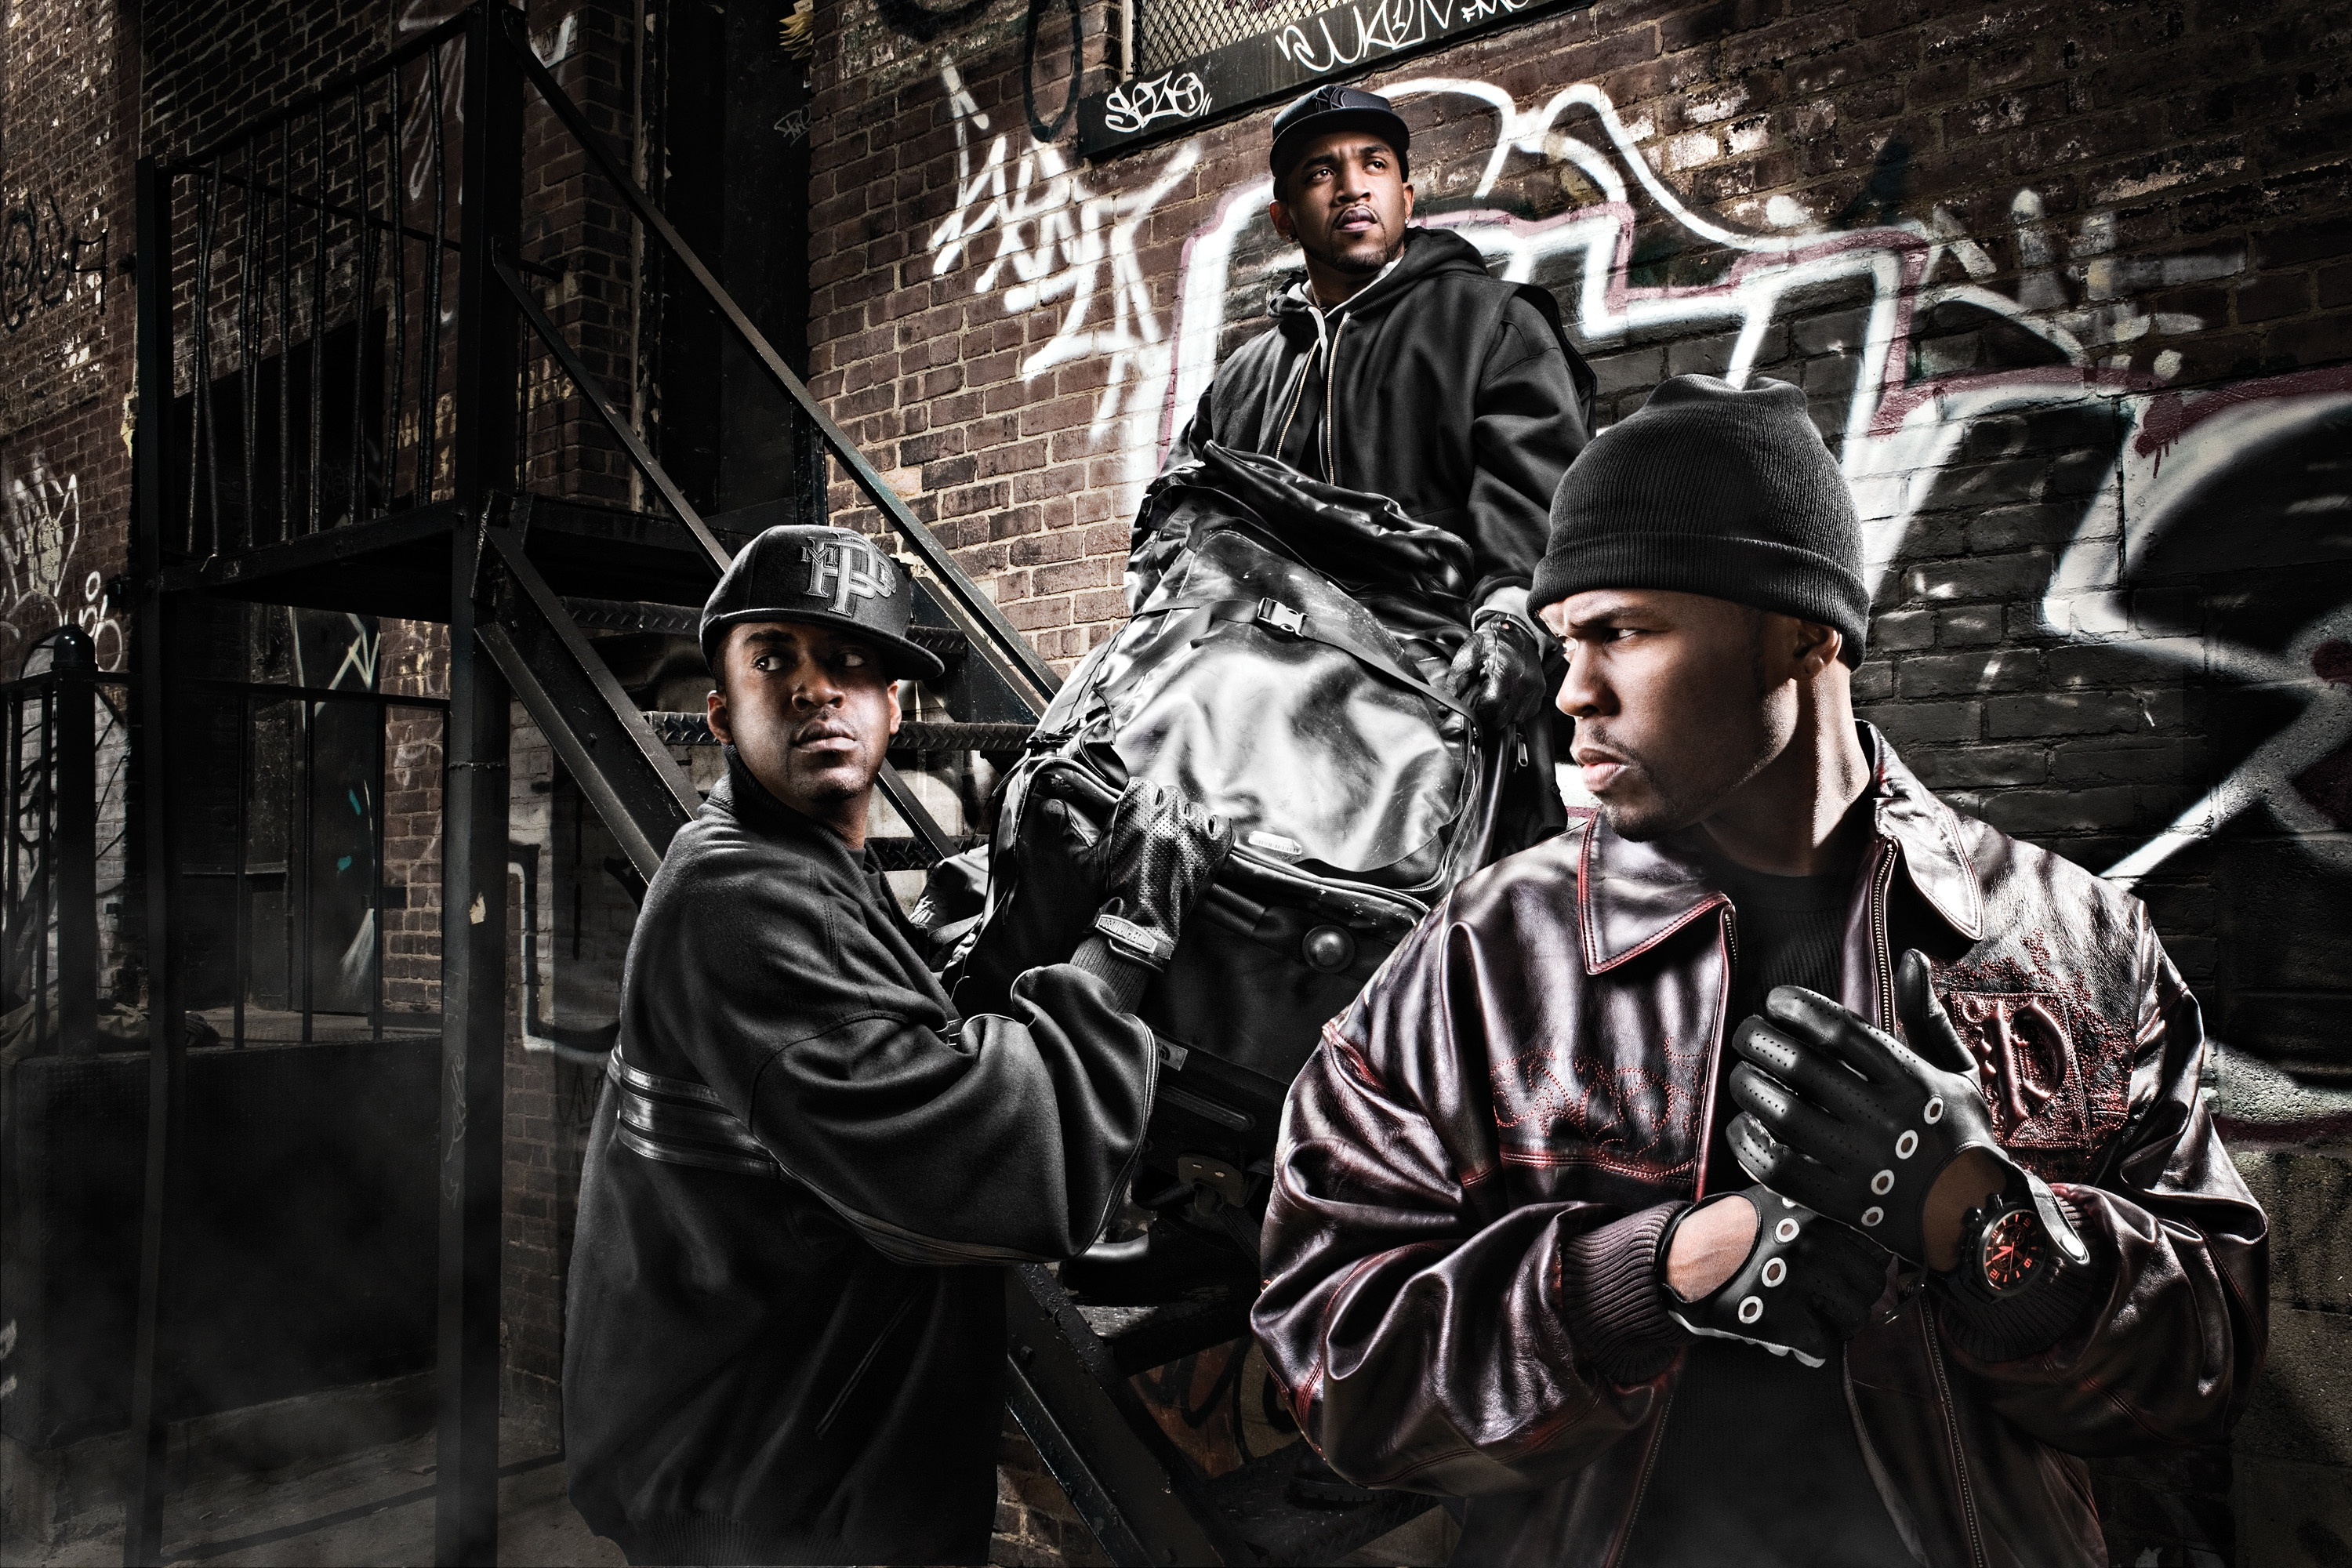 Rapper wallpapers wallpaperup g unit 50 cent gangsta rap rapper hip hop unit cent f wallpaper voltagebd Choice Image